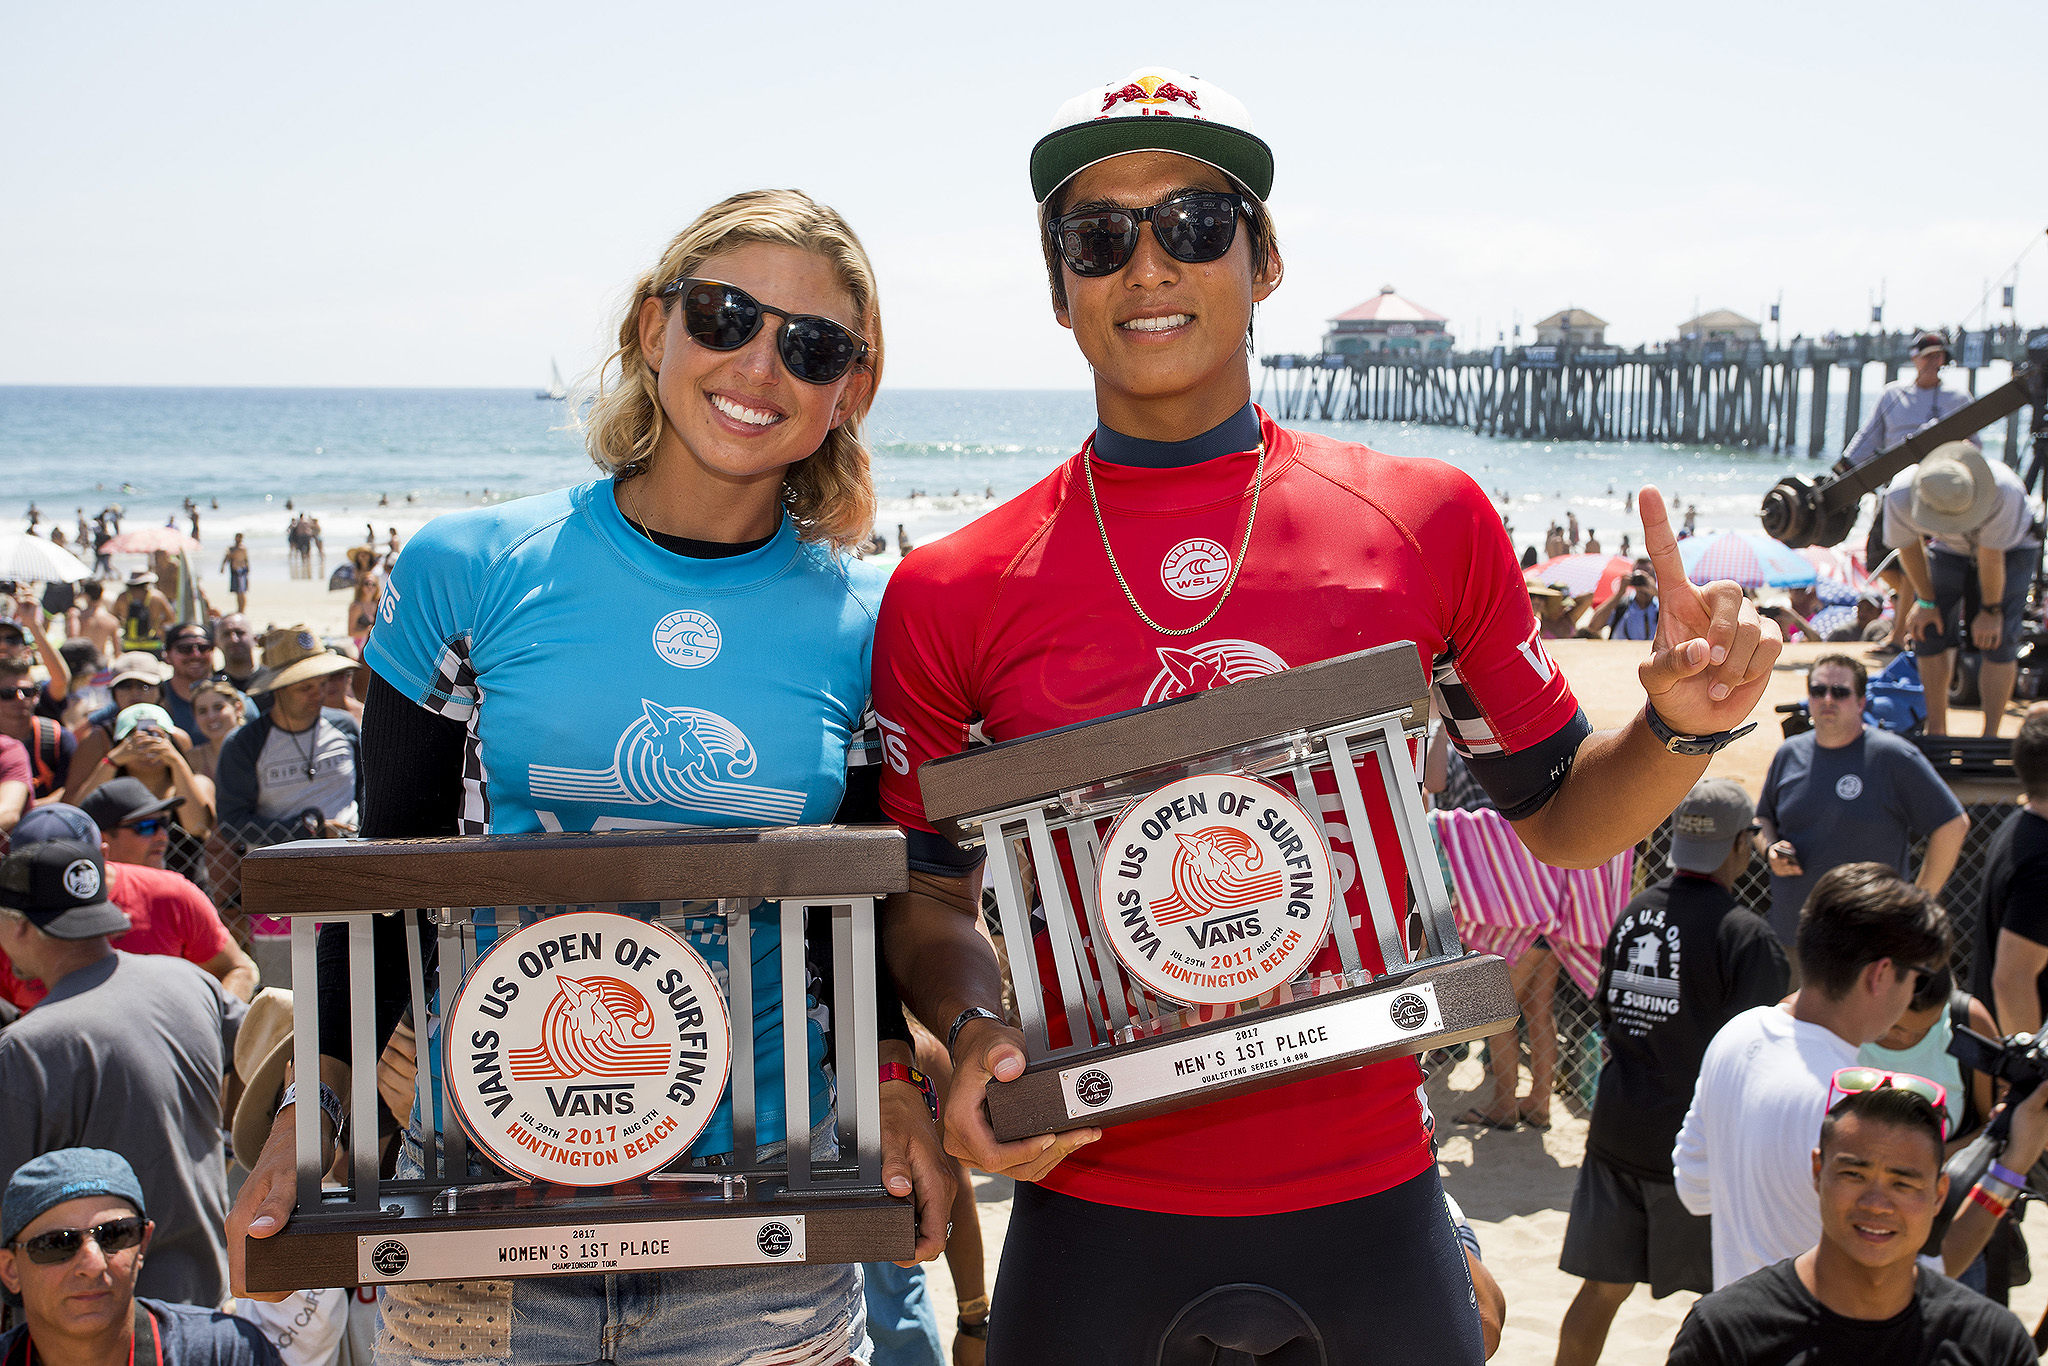 Kanoa Igarashi Sage Erickson 2017 VANS US Open of Surfing Winners